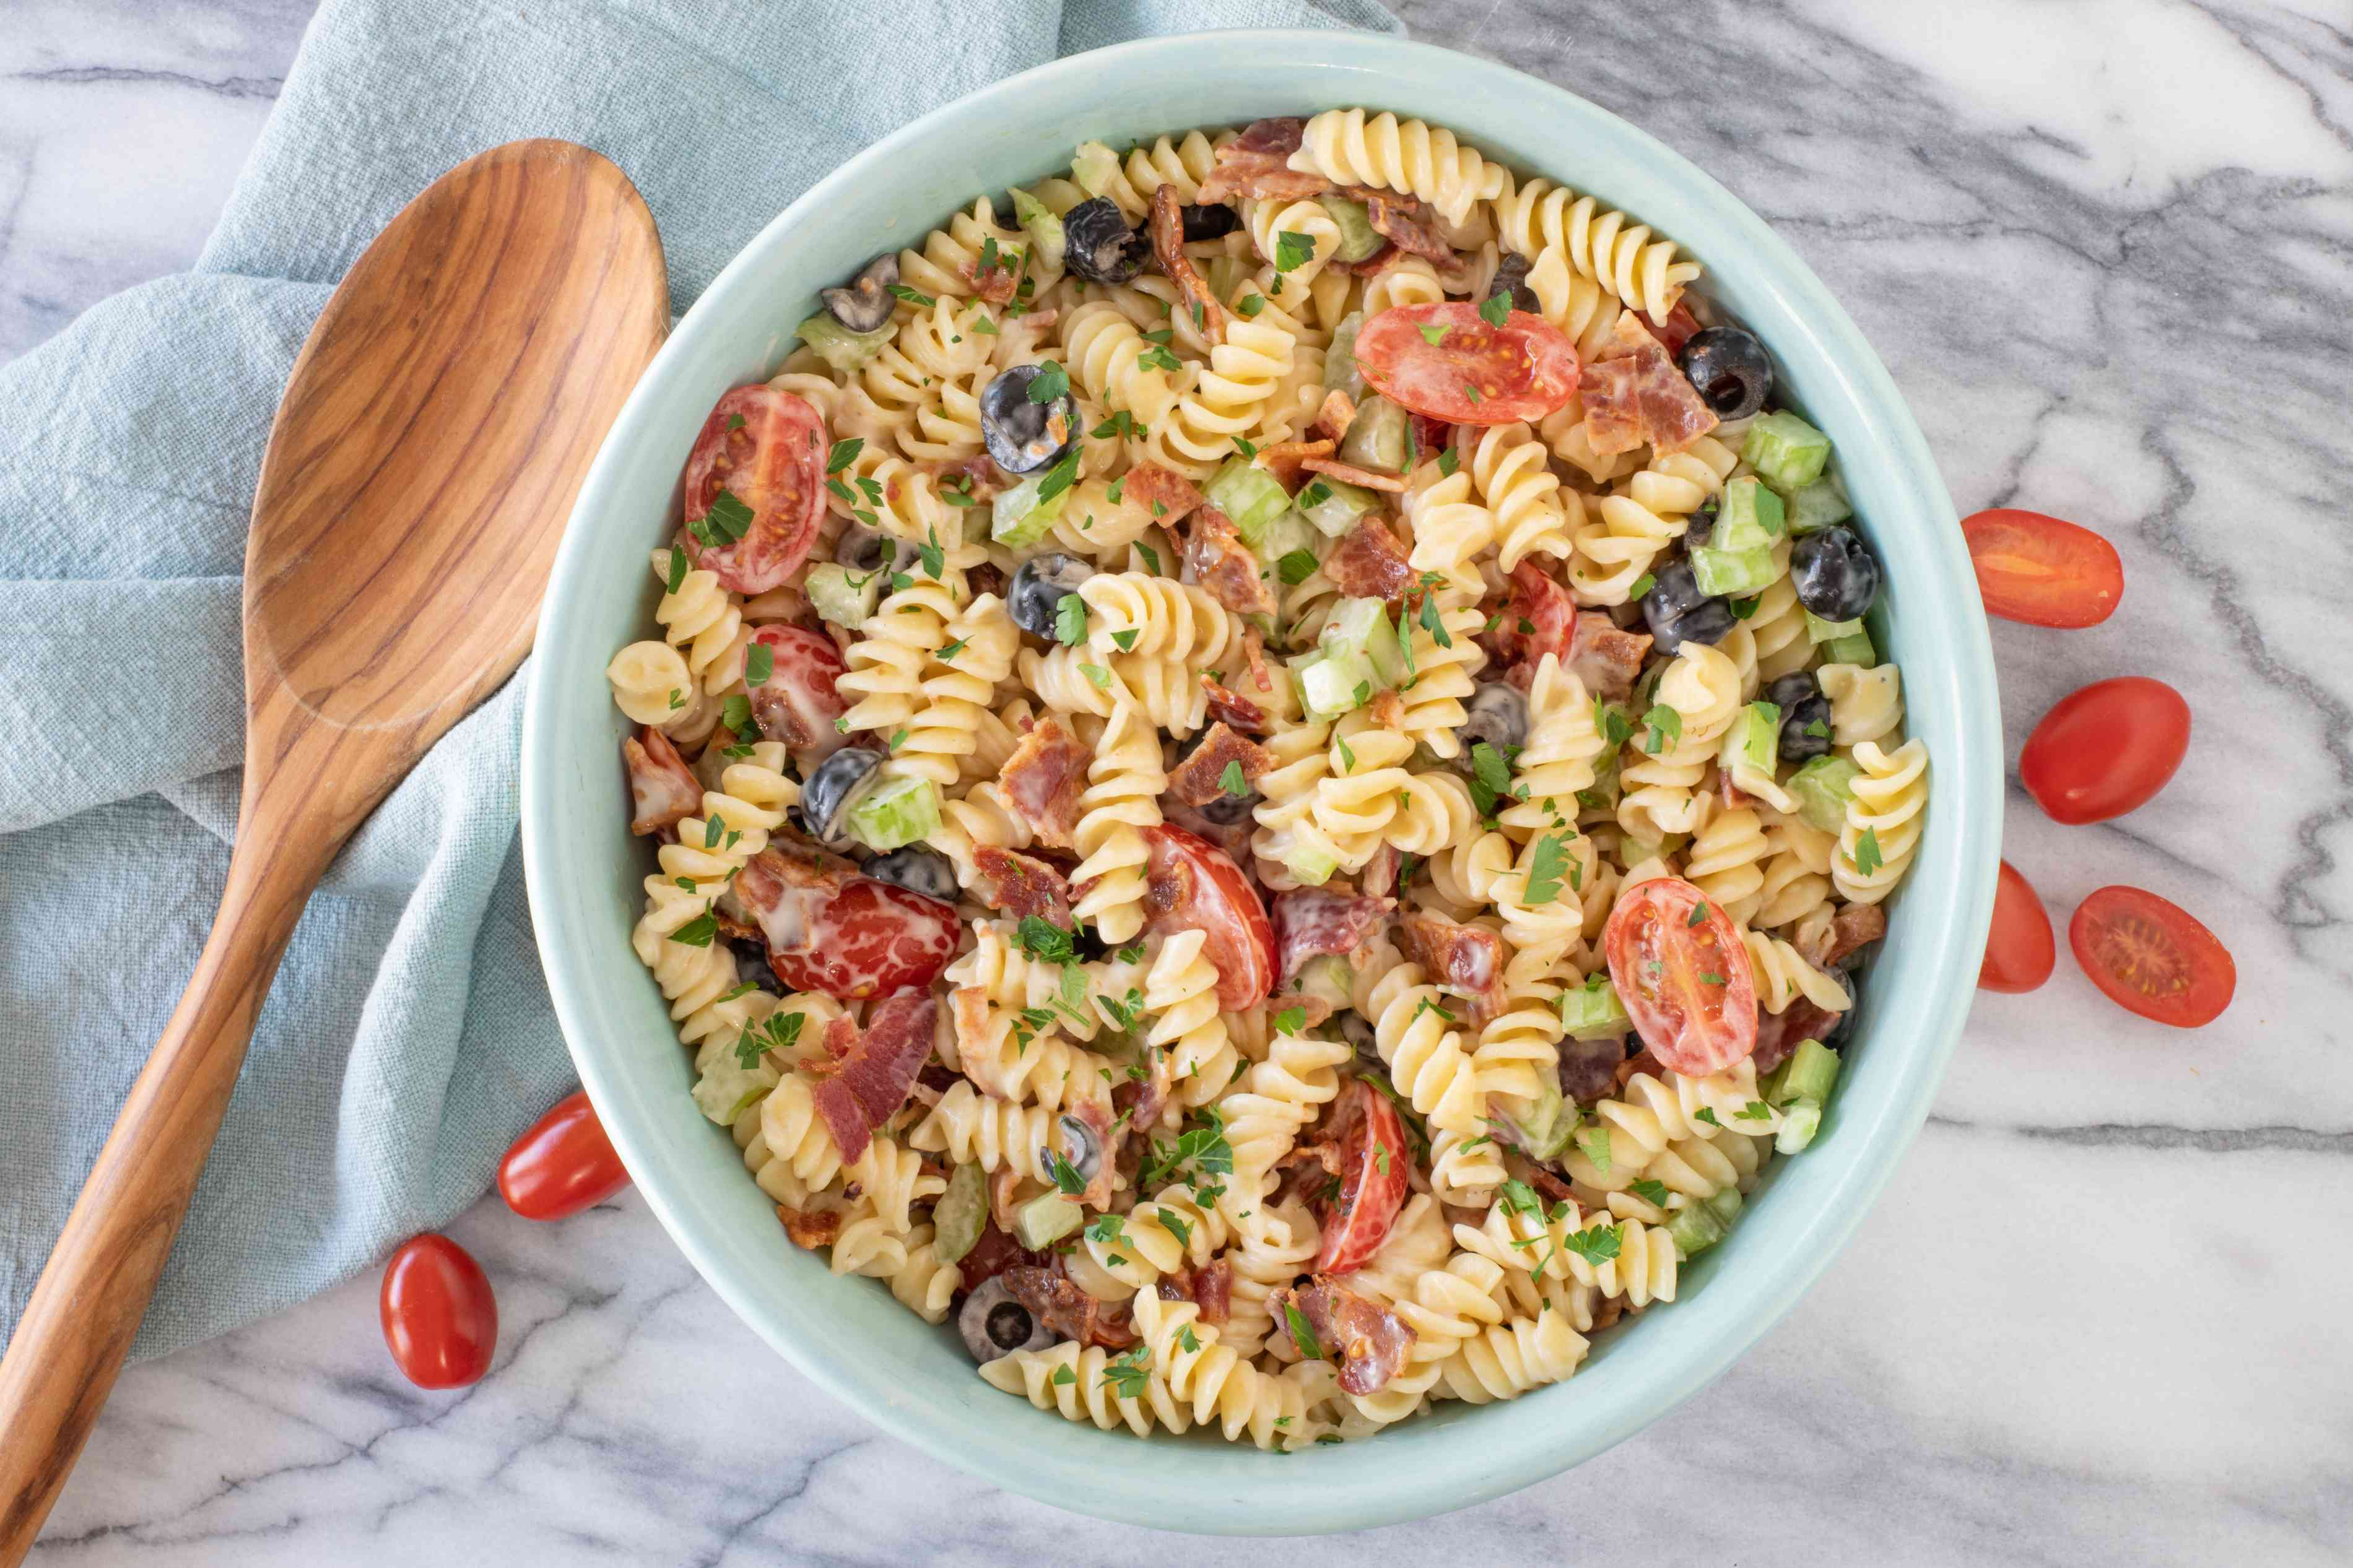 Bacon ranch pasta salad in a serving bowl.